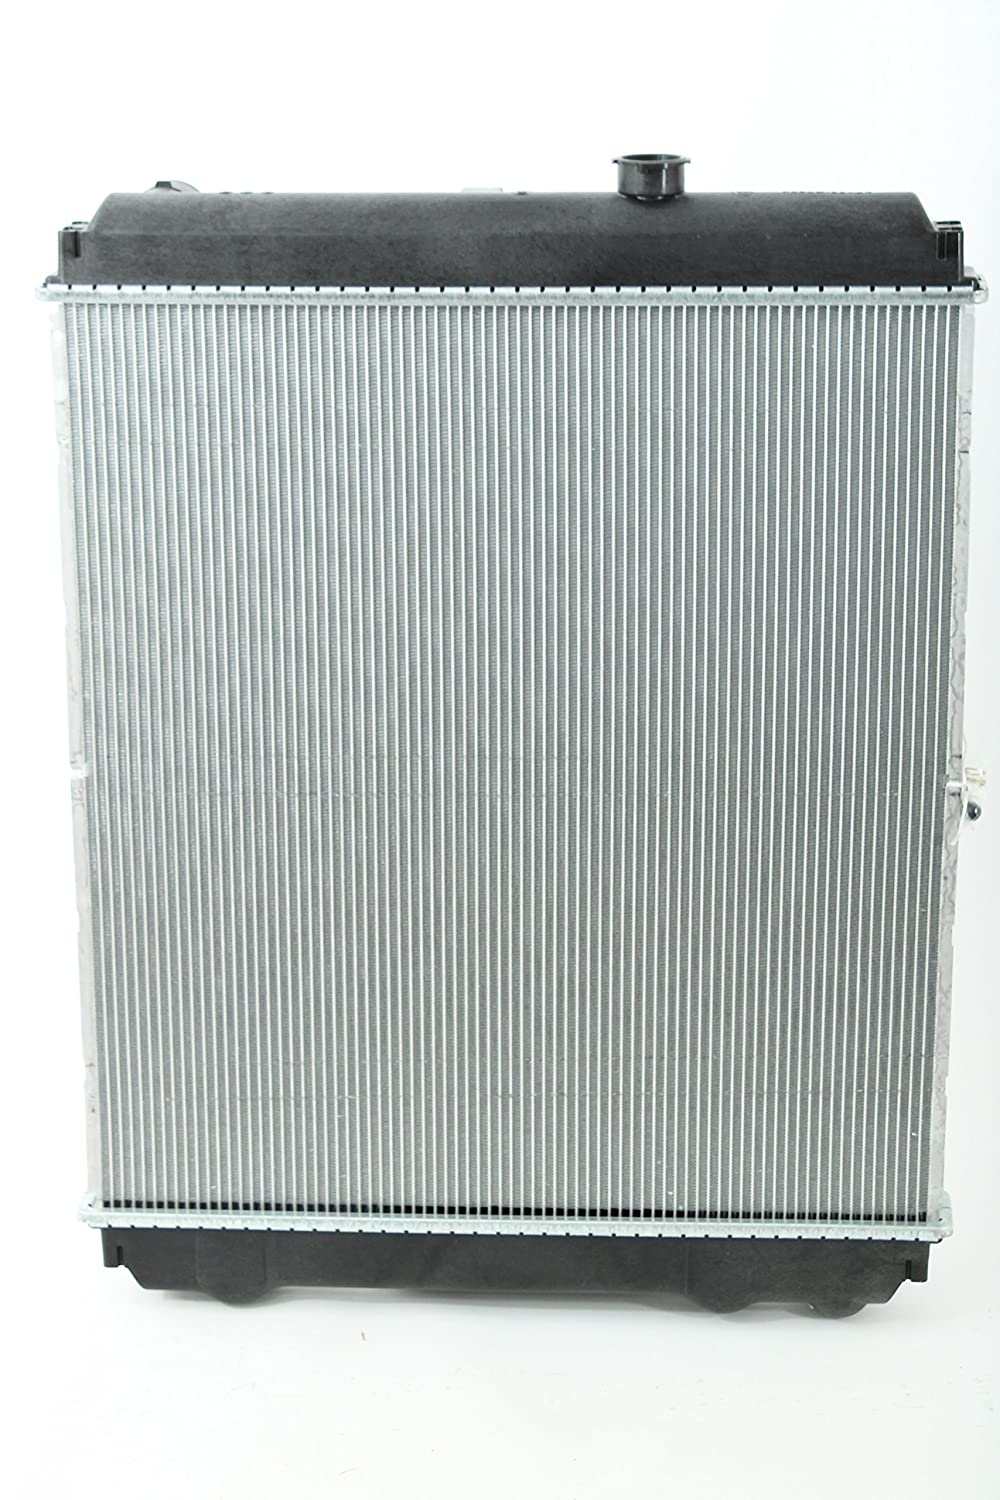 Amazon.com: Hino Truck Radiator 238 258 268 & 338 Models OEM# S160906840 16400E0070 16400E0071: Beauty